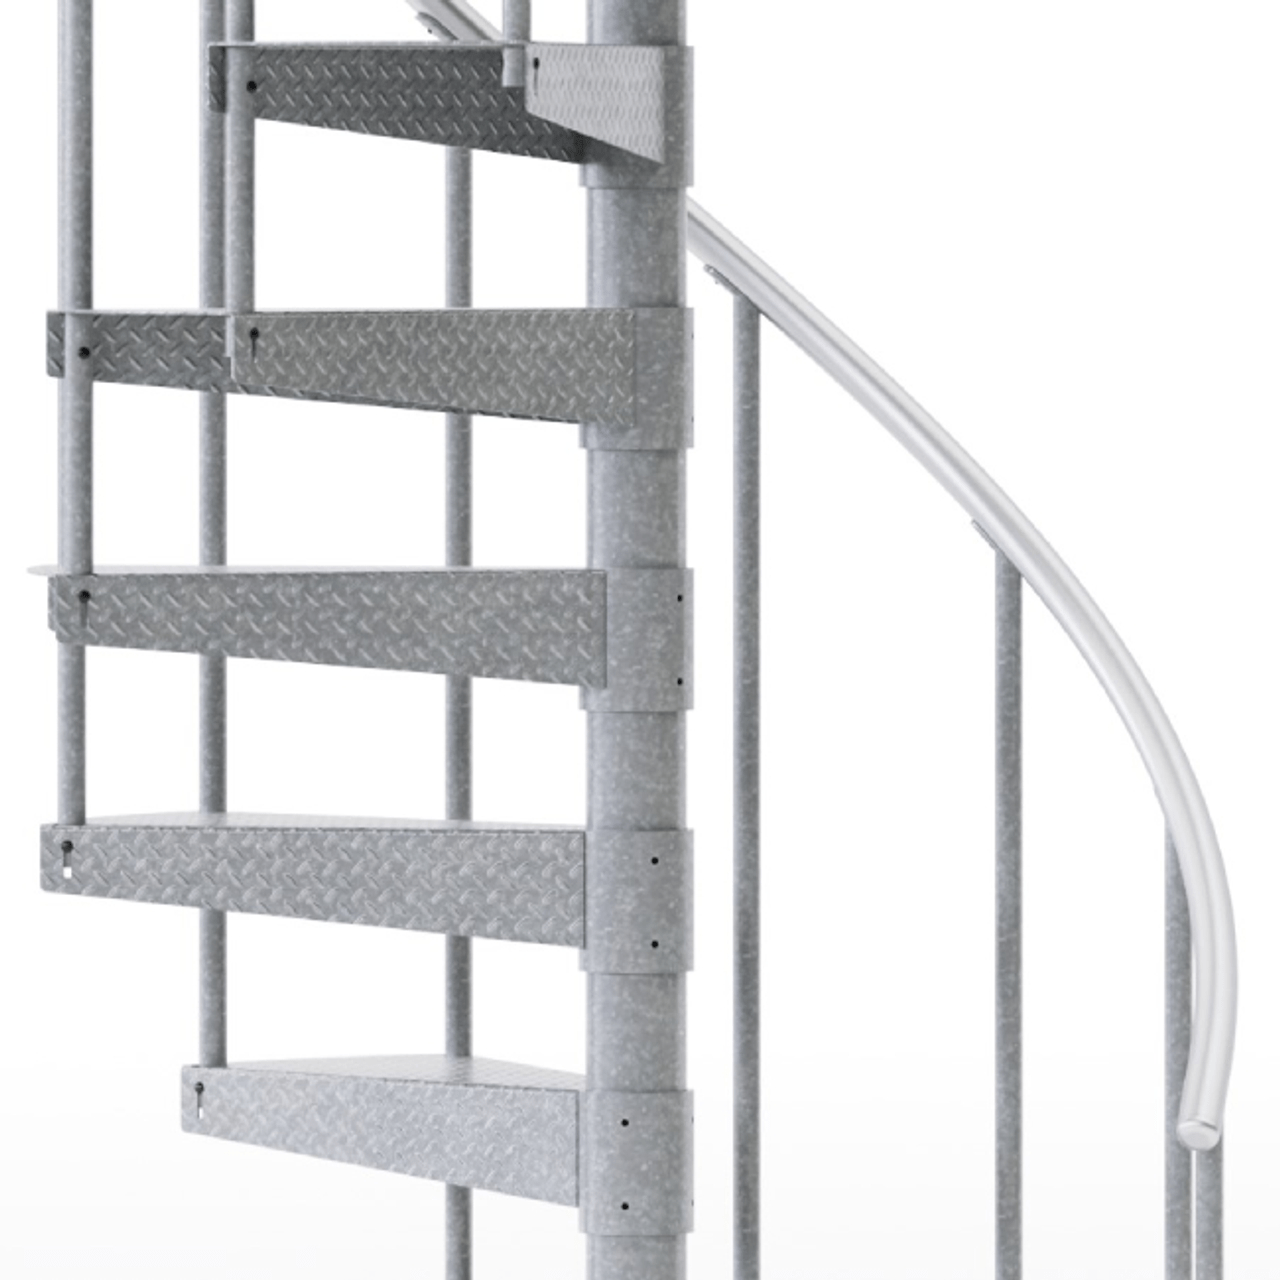 Reroute Galvanized 3 6 Steel Spiral Stair Kit Mylen Stairs | Diy Outdoor Spiral Staircase | Simple | 12 Foot | Metal | Do It Yourself Diy | Curved